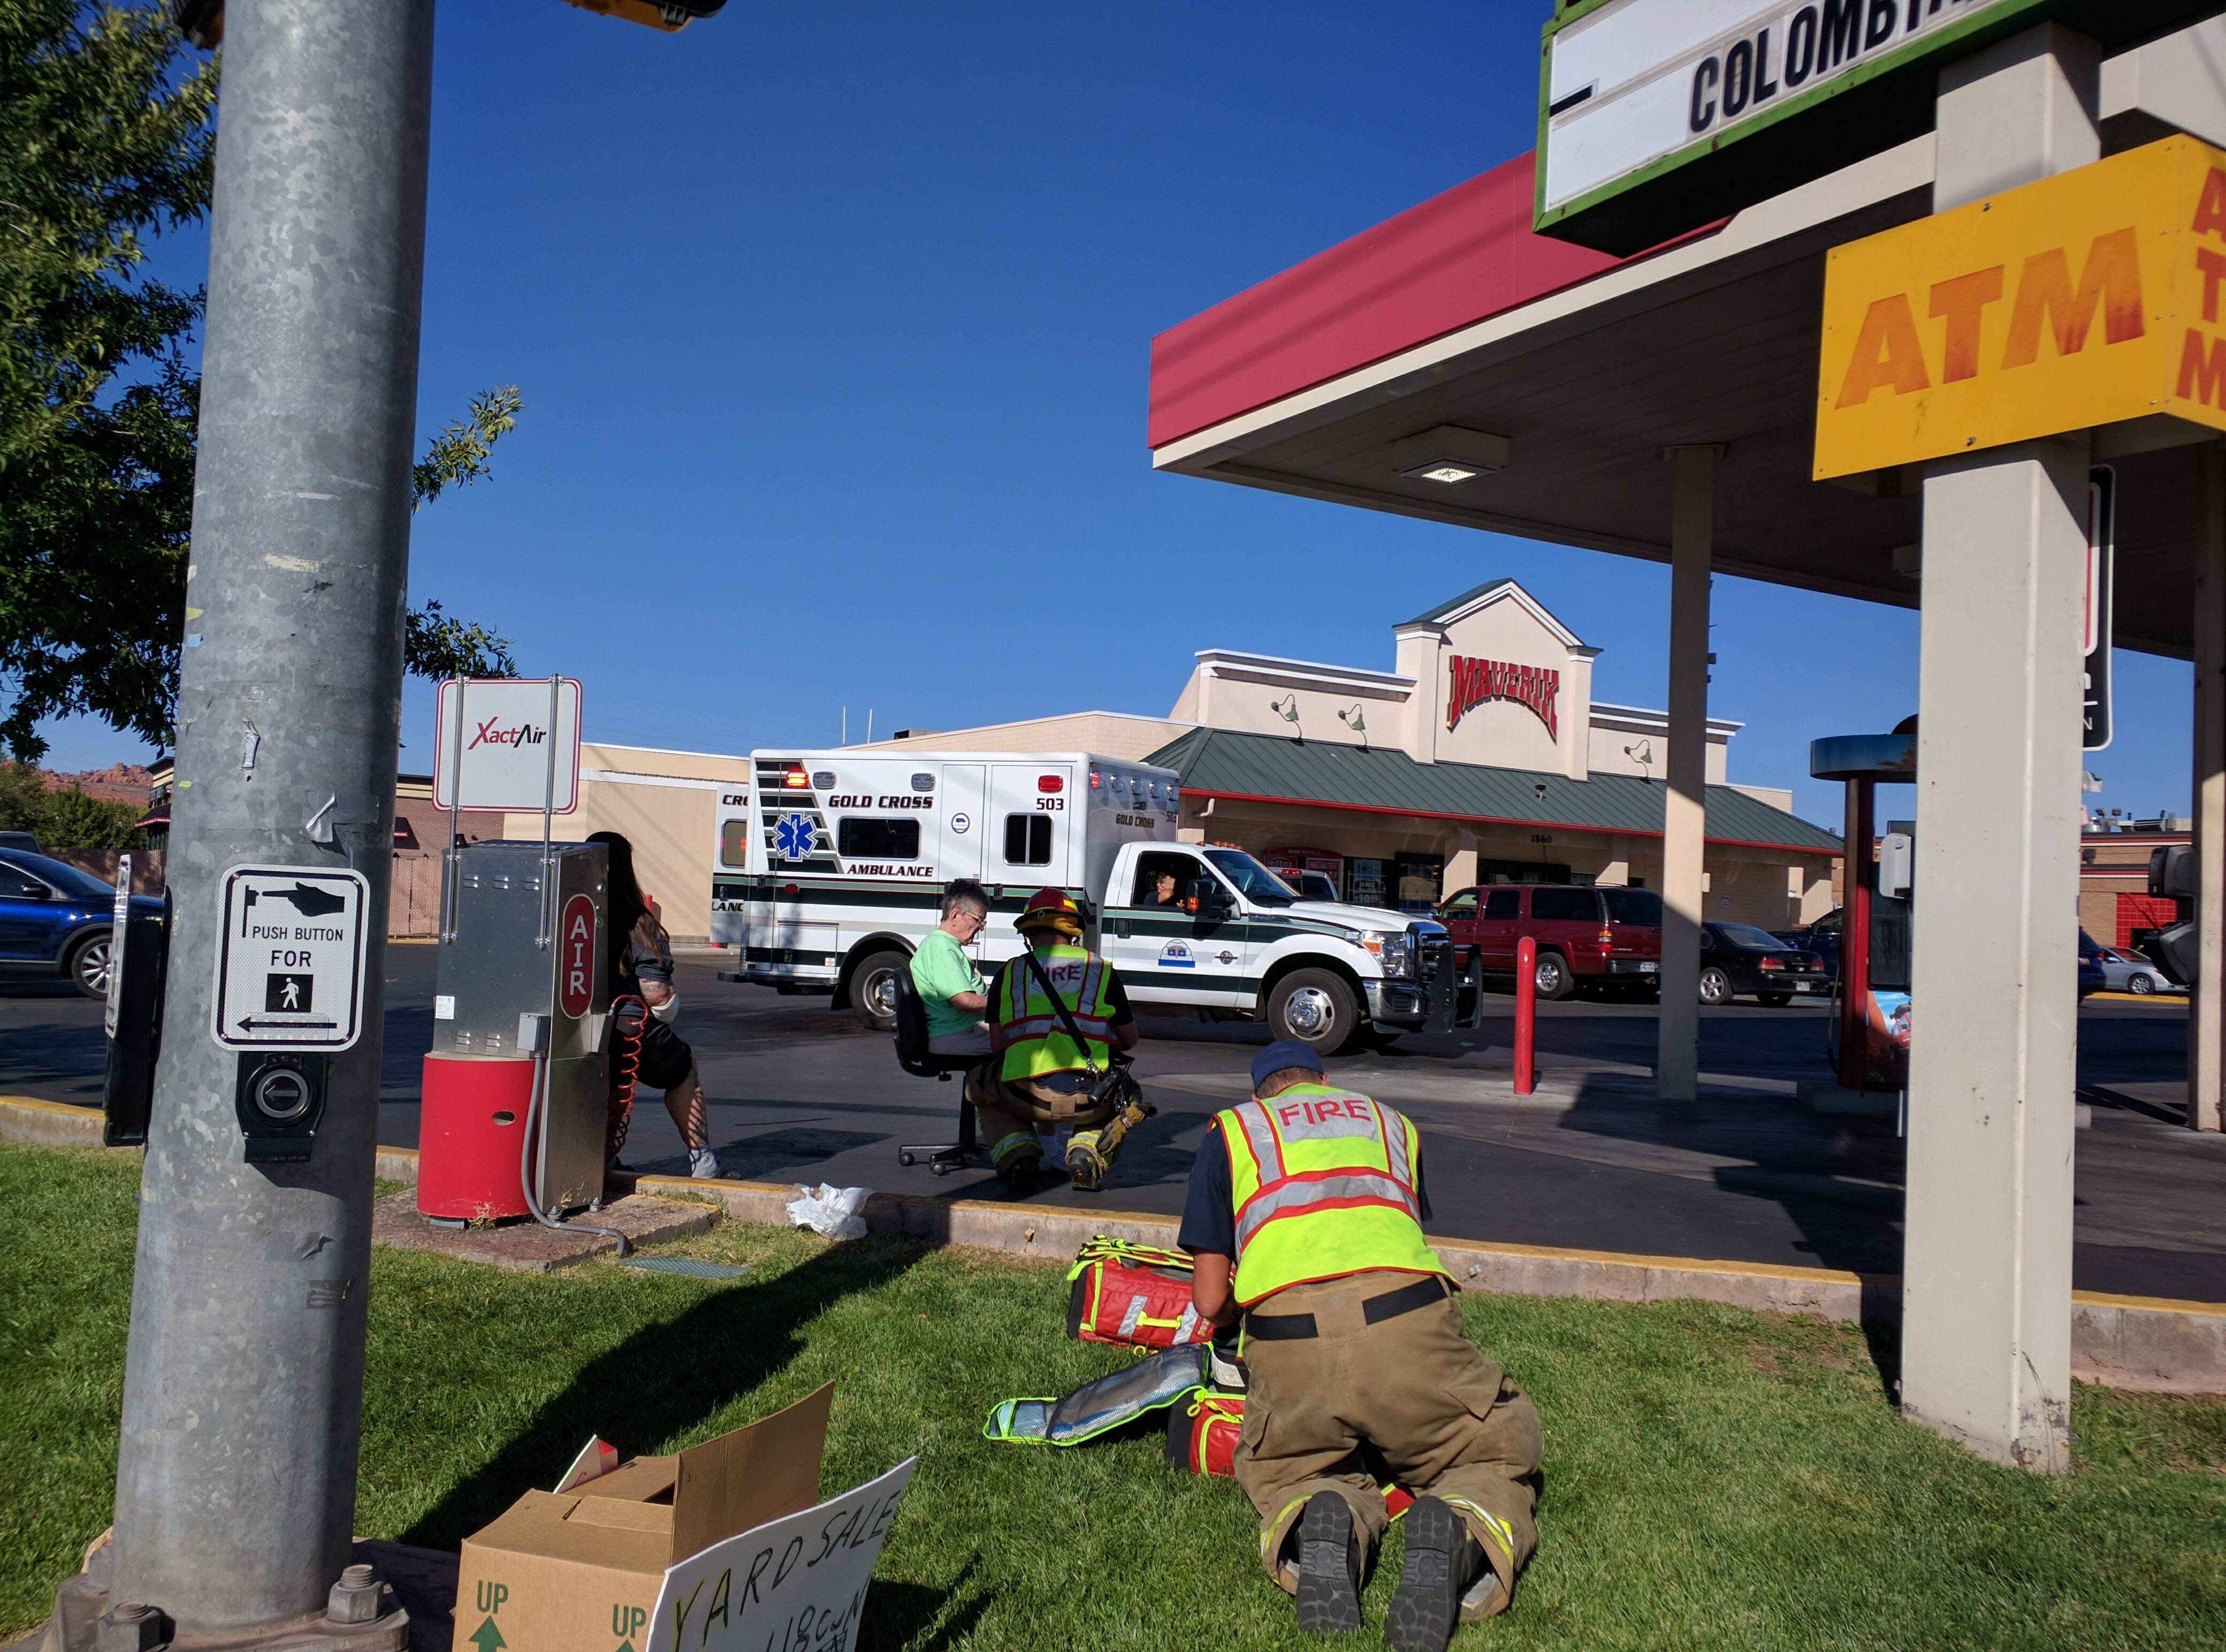 Emergency crews assist patients after a collision on Sunset Boulevard, St. George, Utah, Oct 15, 2016 | Photo by Joseph Witham, St. George News